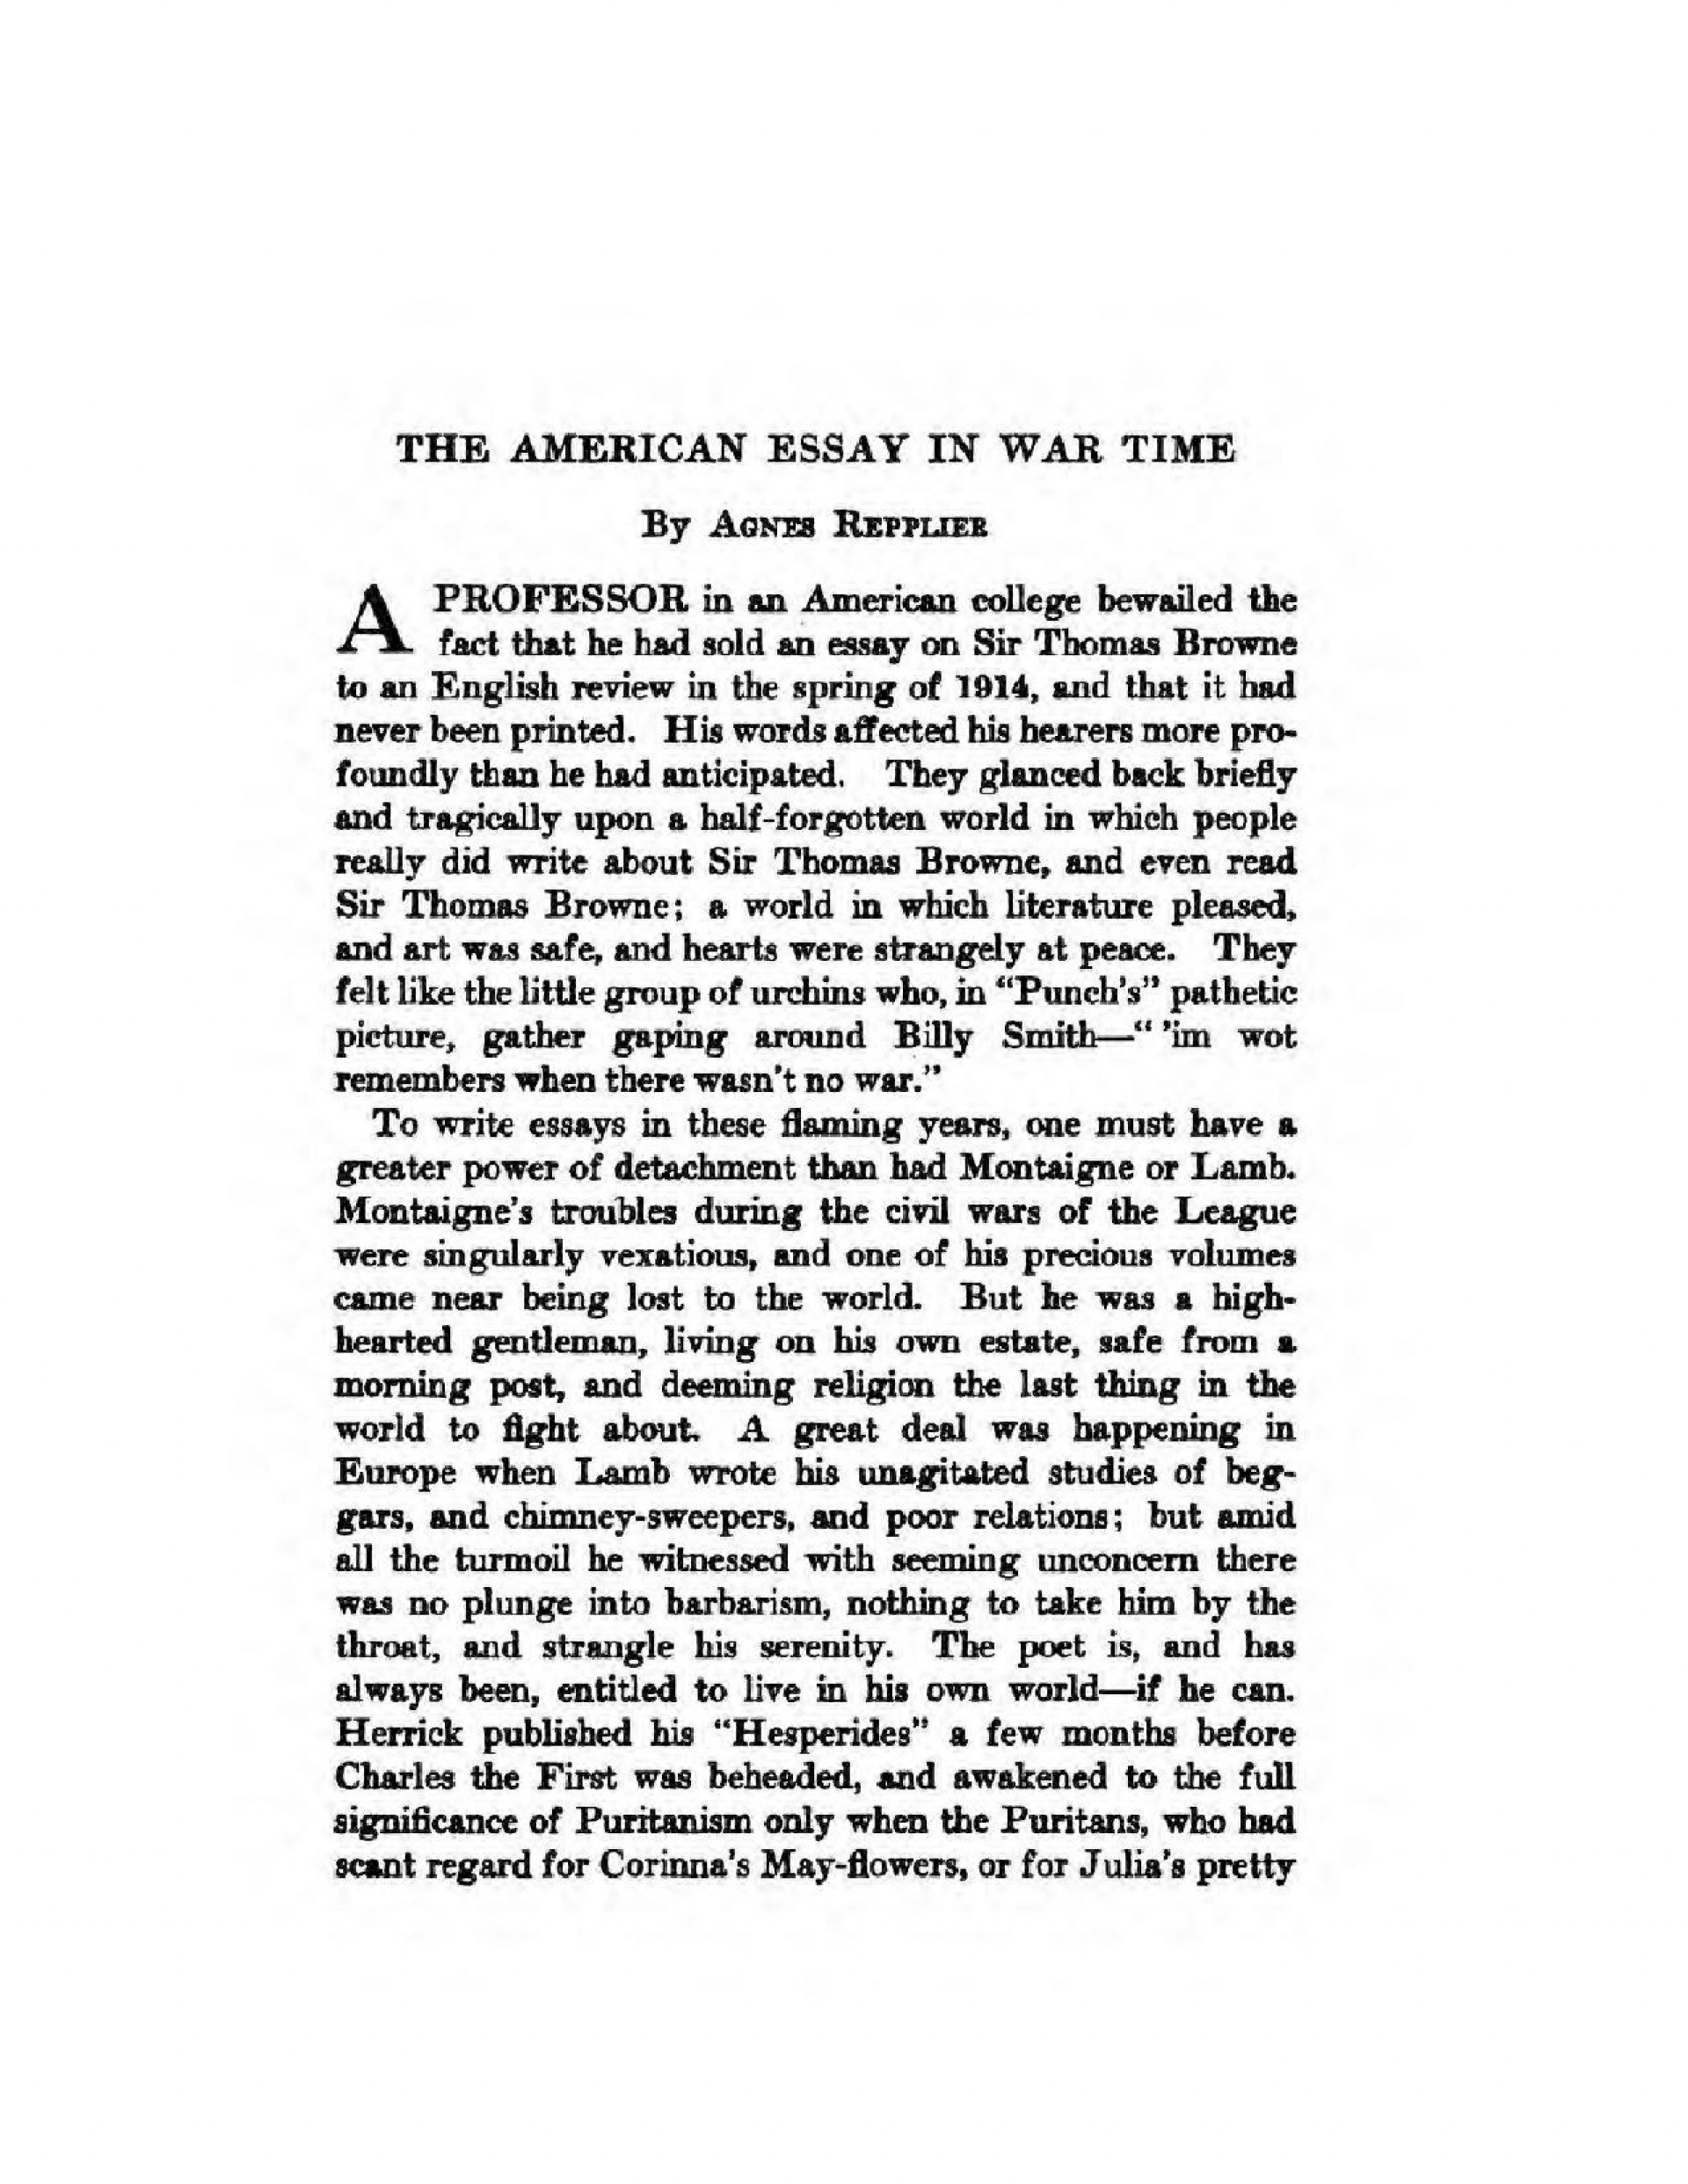 009 Essay Example What Is An American Page1 1275px The In War Time2c Agnes Repplier2c 1918 Stupendous Thesis Your Dream Ideas 1920